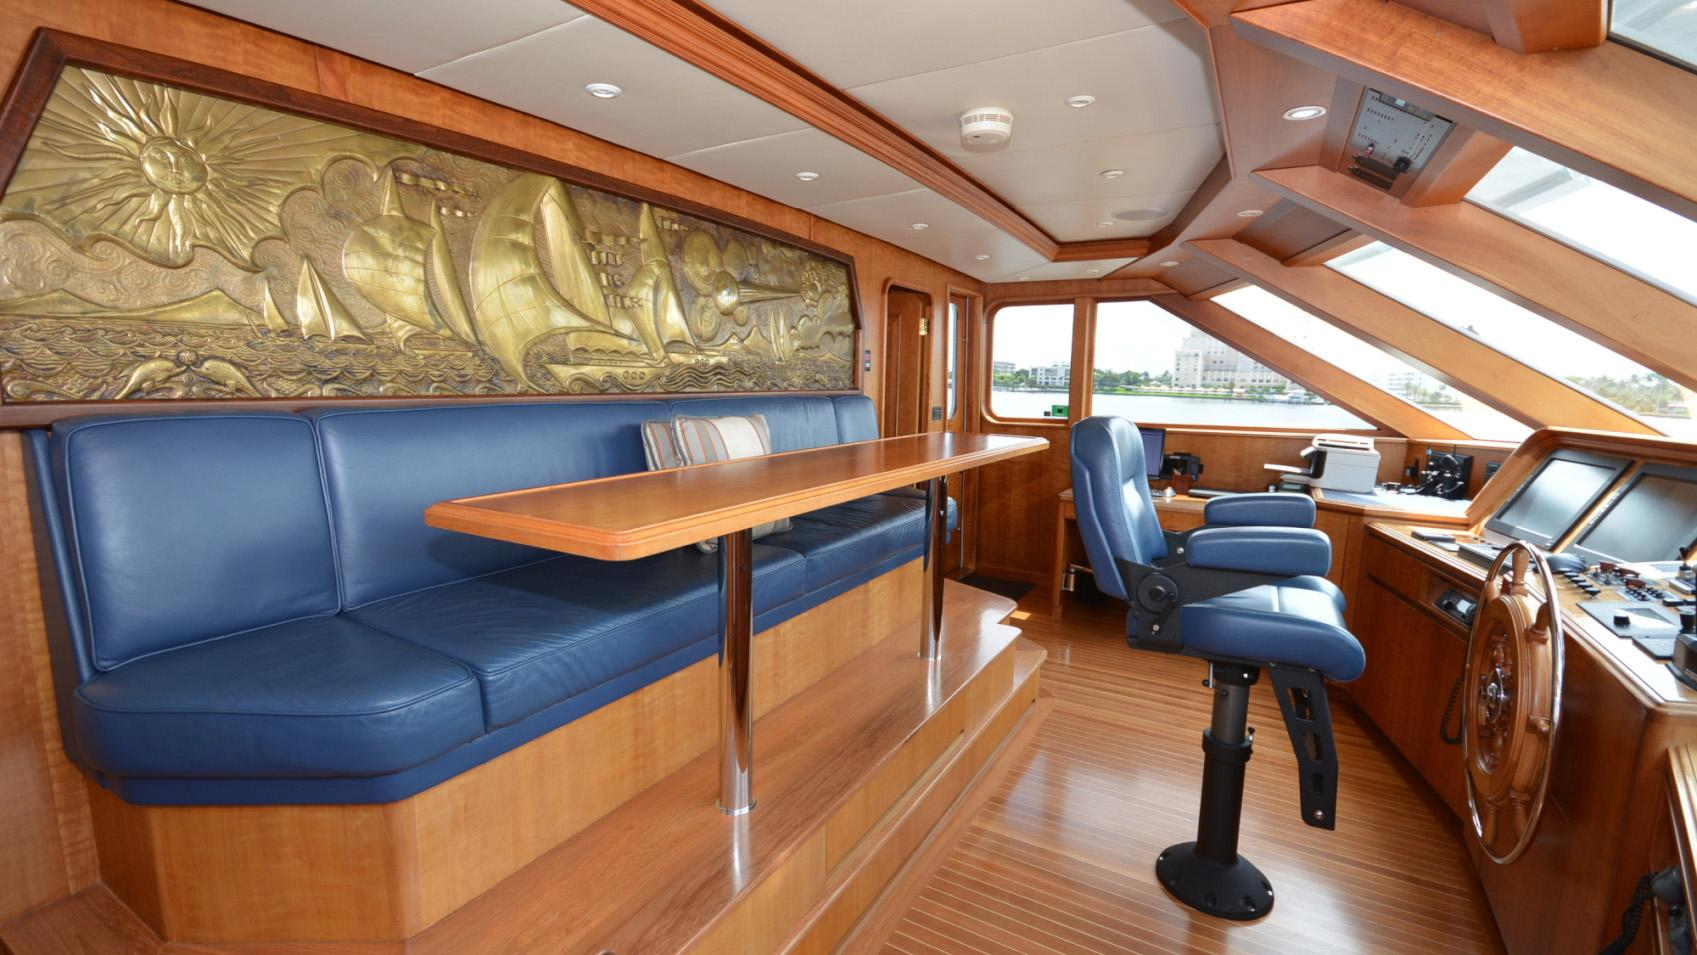 Ar De motor yacht for sale pilot house